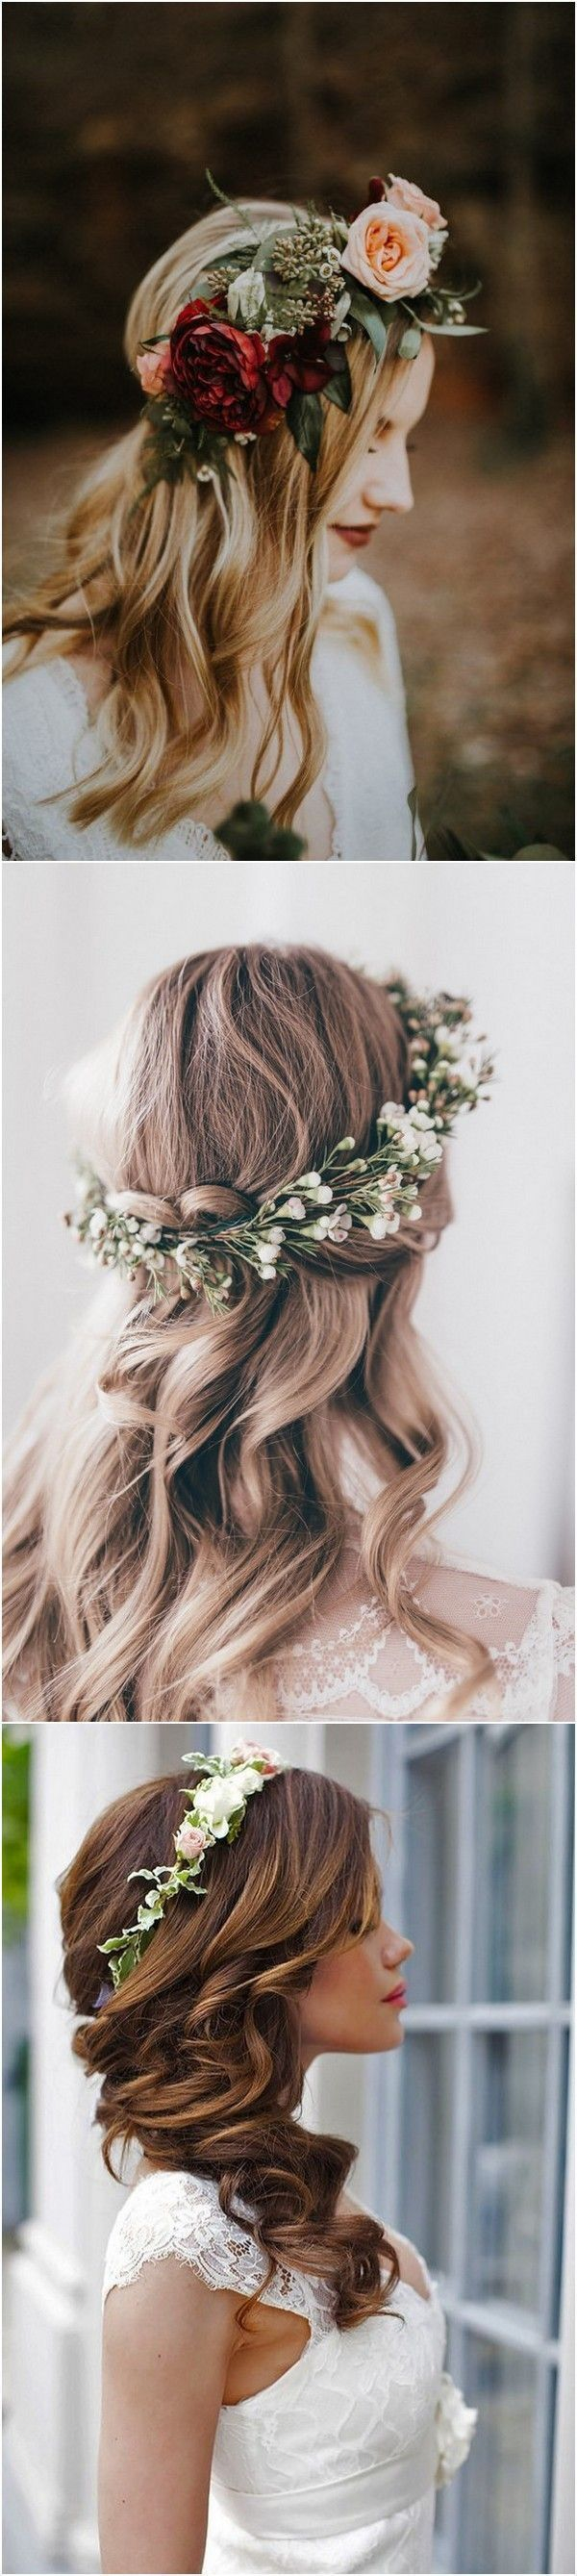 Wedding hairstyle ideas with flower crown #wedding #weddinghairstyles #weddingideas #weddingcrowns #weddinghairstyleswithflowers #weddingflowers